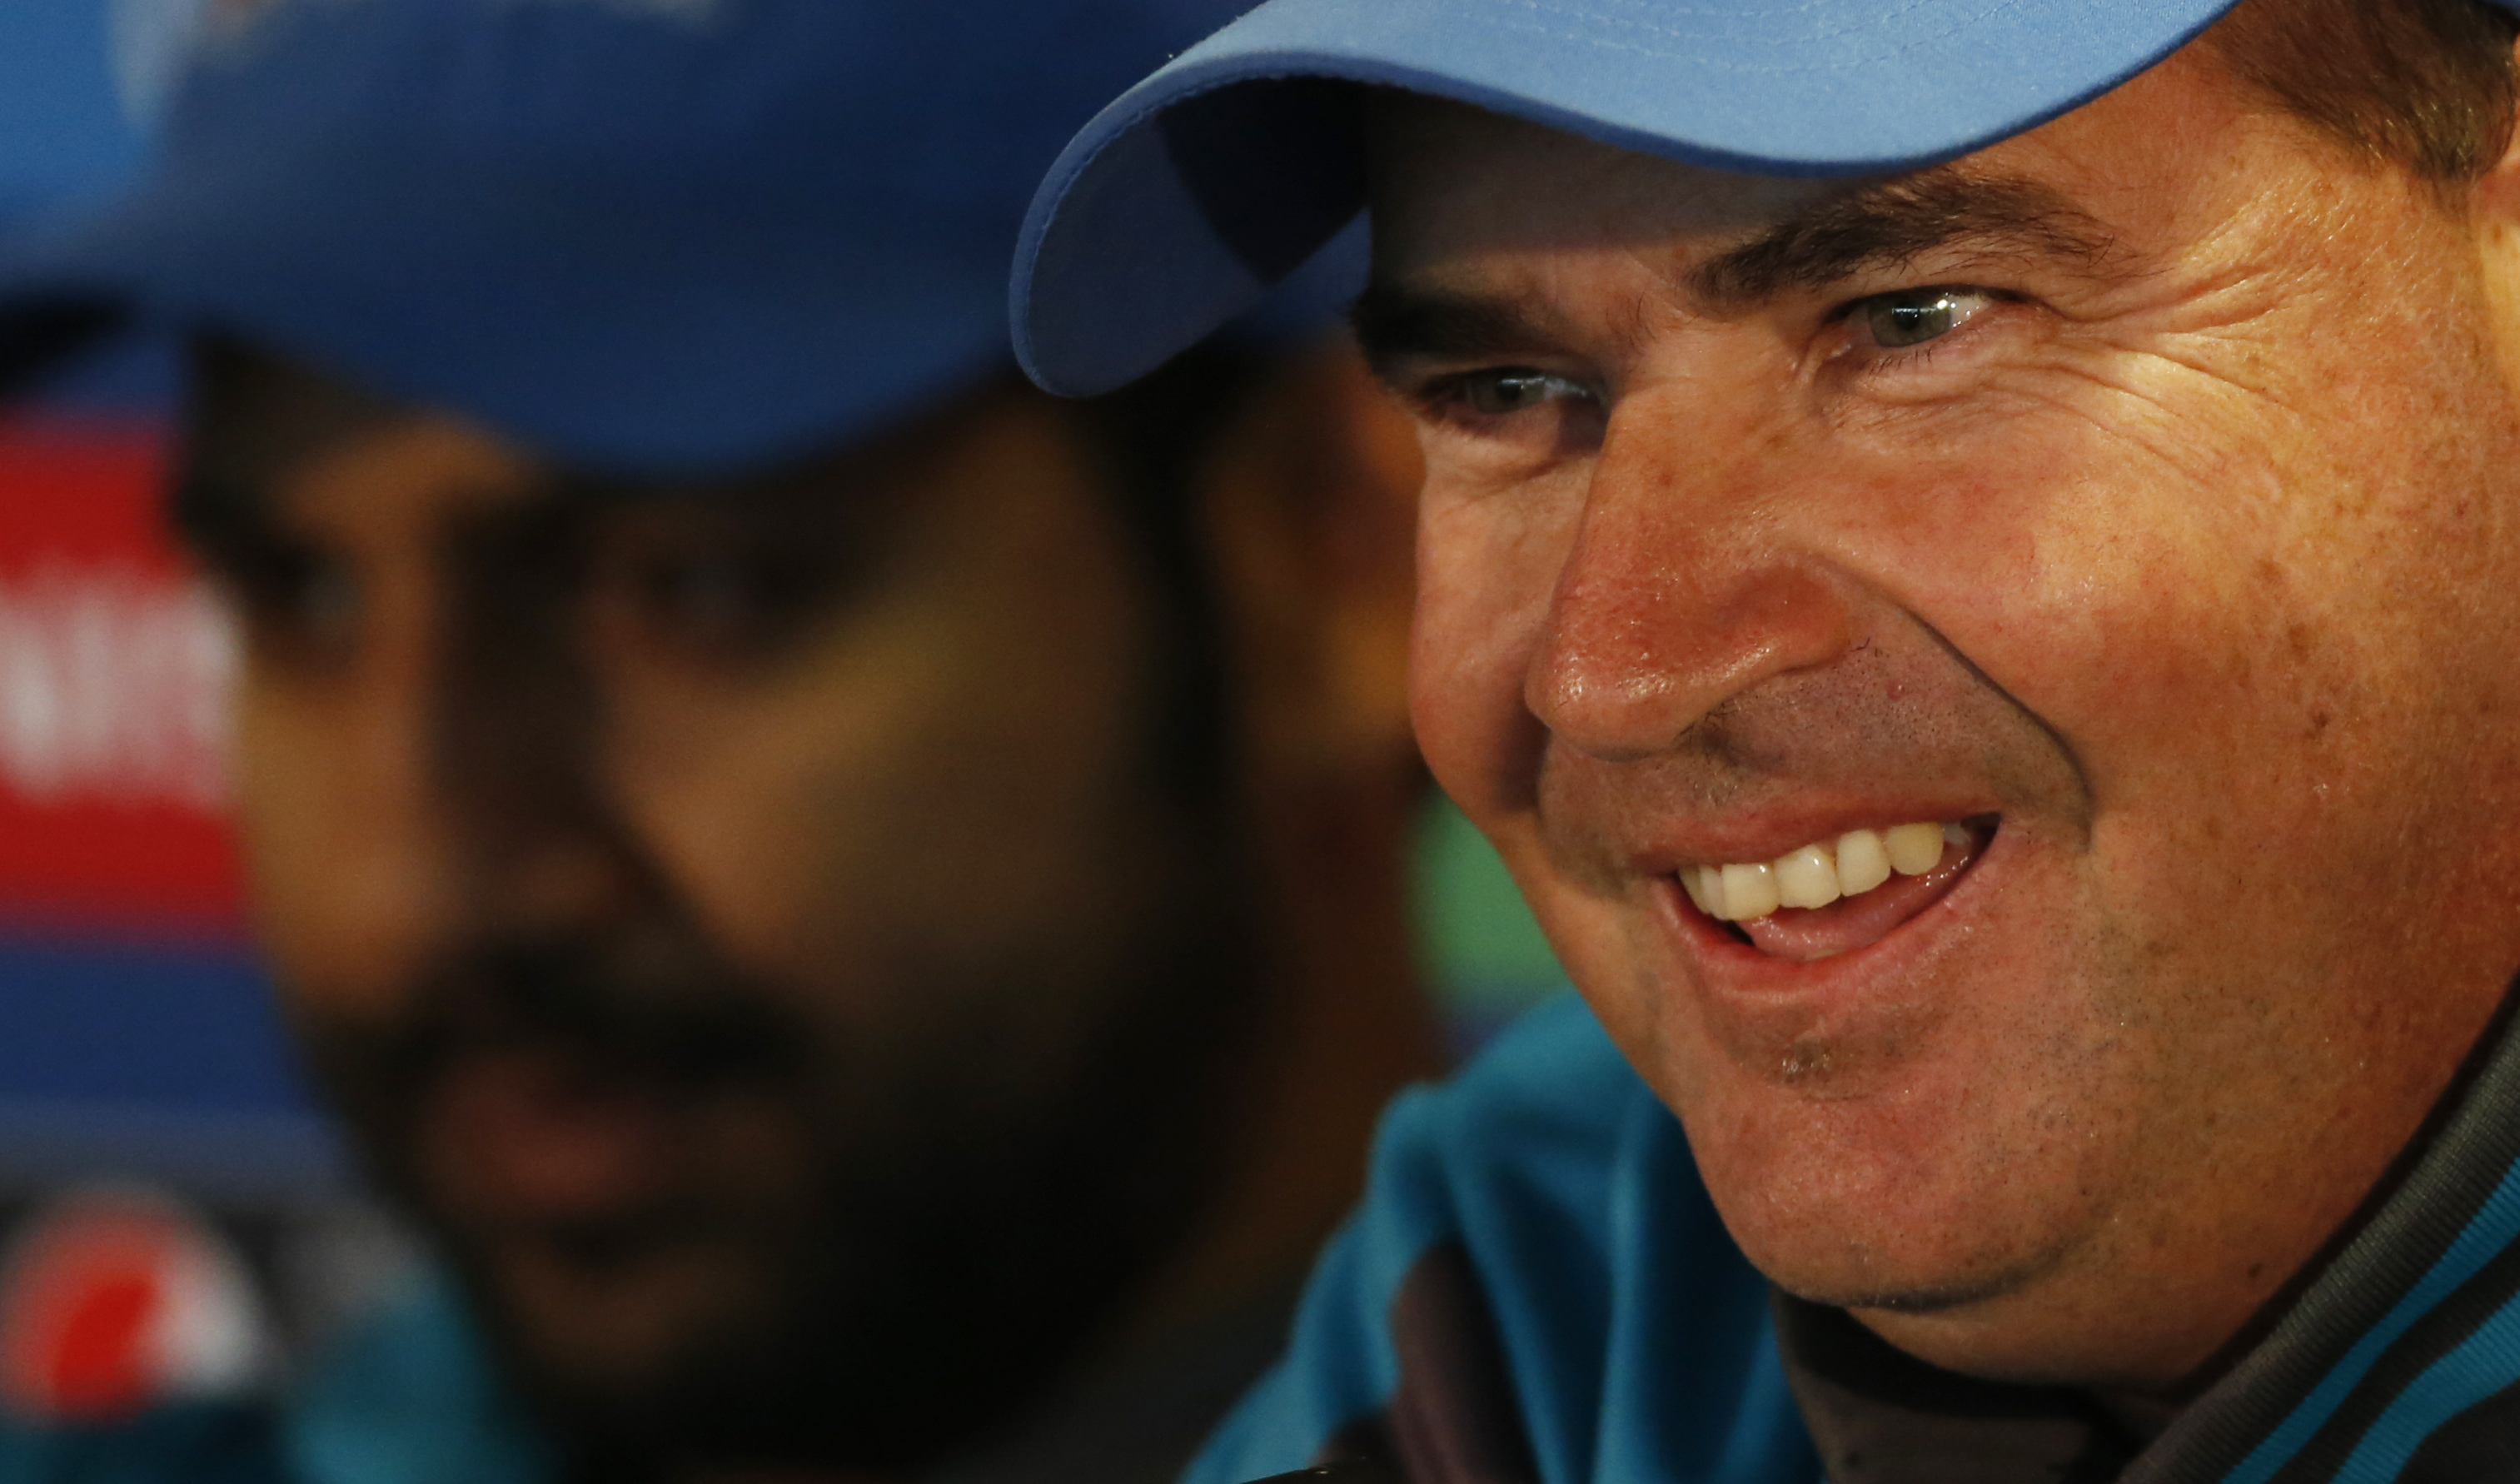 Cricket: We are completely calm ahead of India match, says Pakistan coach Arthur